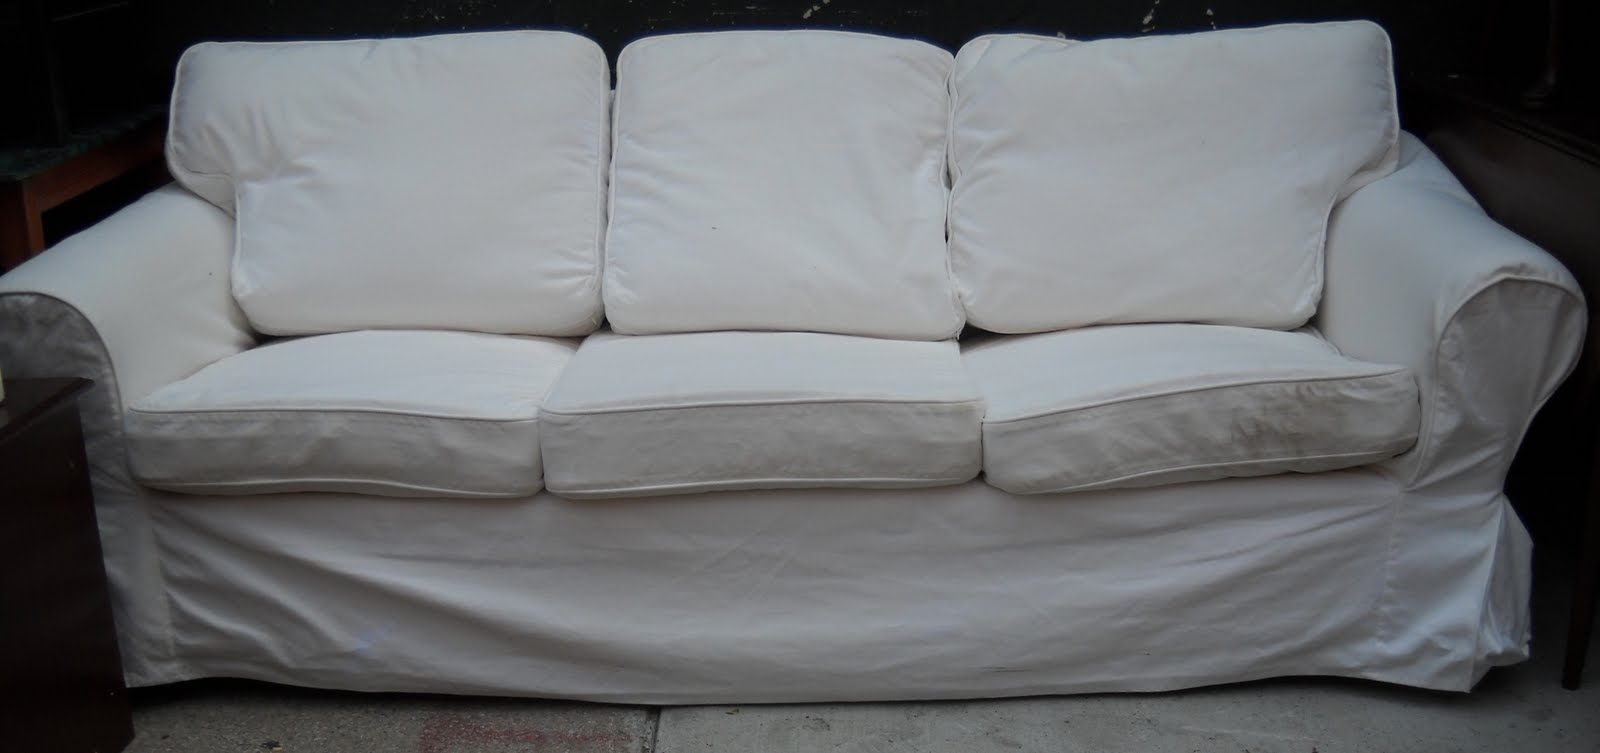 Ikea Ektorp Couch SOLD